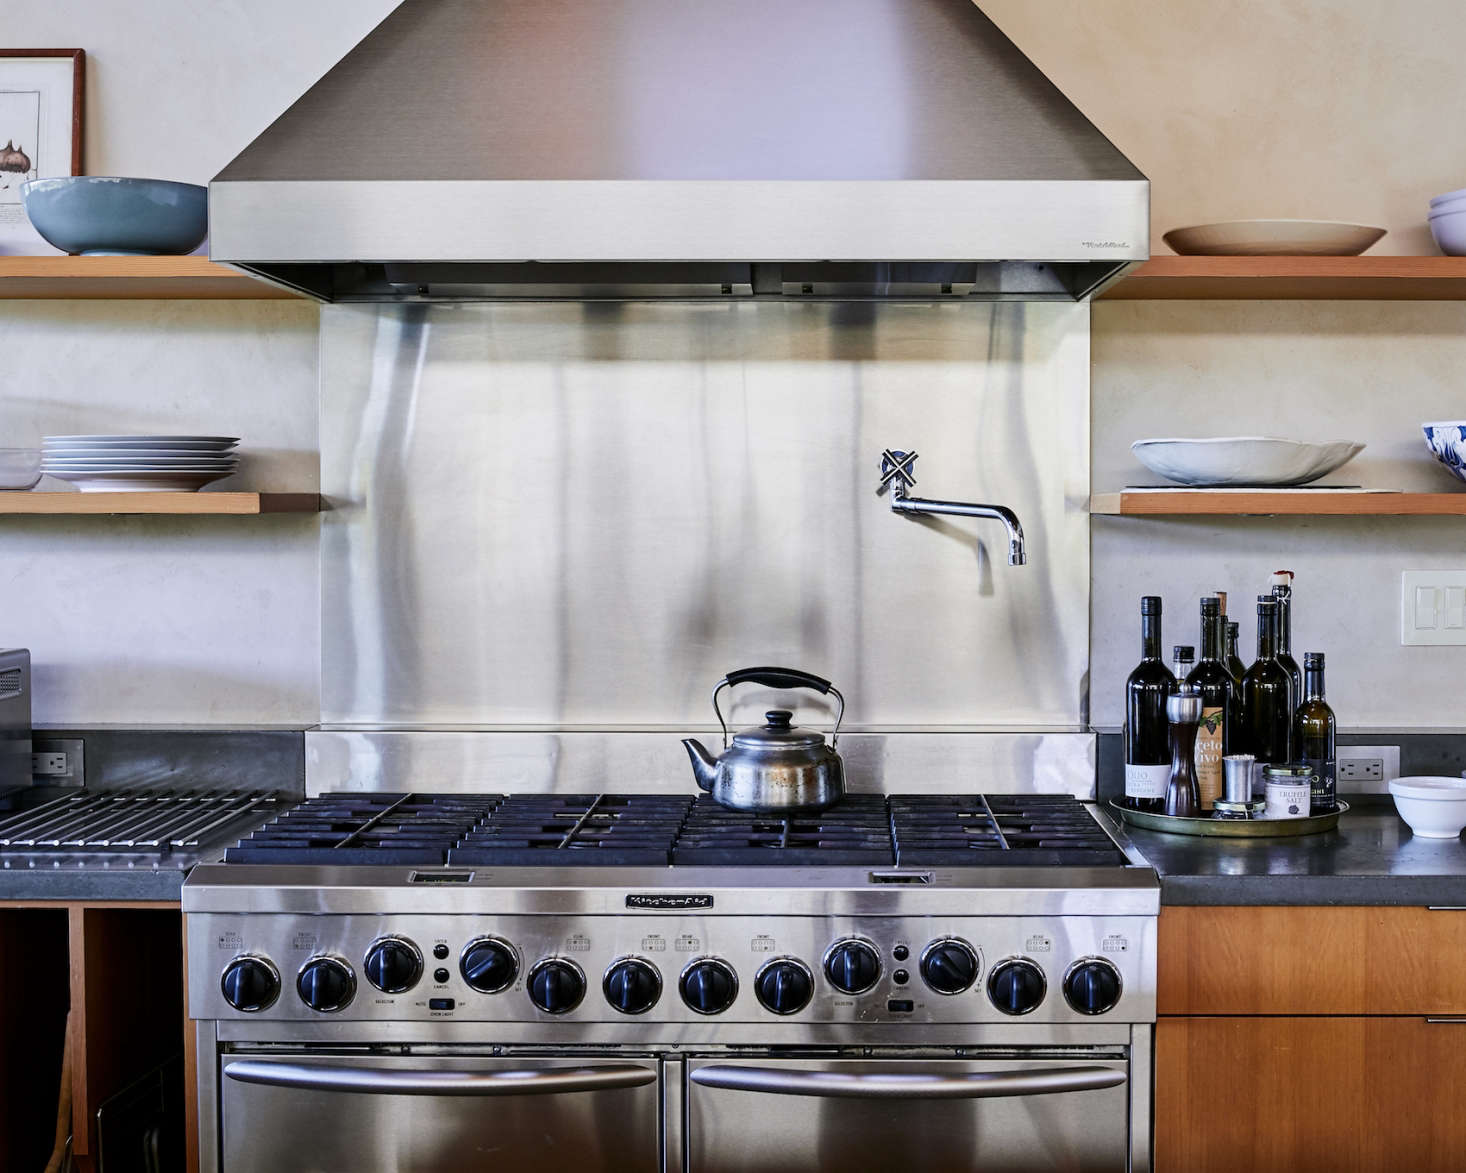 The Backsplash Of The Oversize Gas Range Is Stainless Steel, As Are All The  Appliances